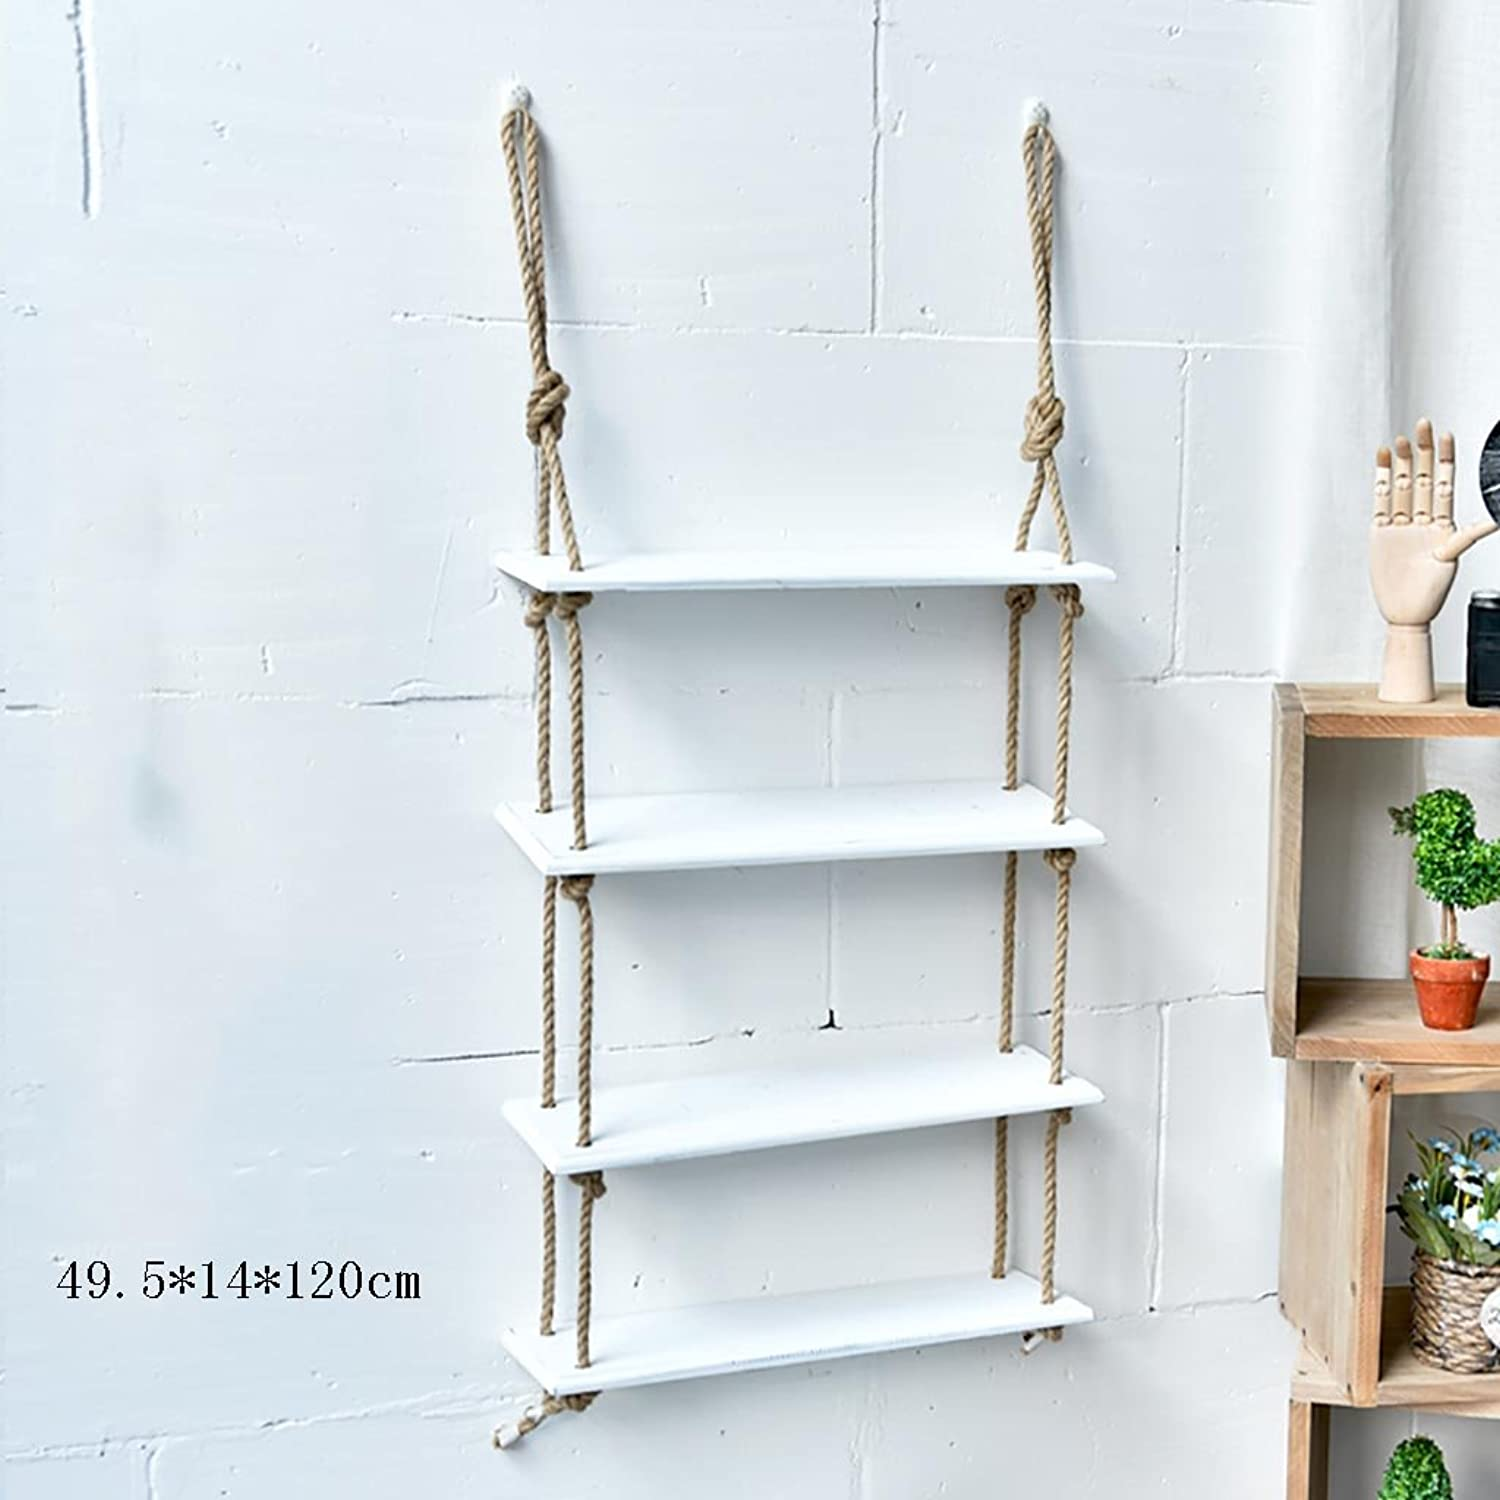 Decorative Accessories Wall Shelves Solid Wood Hemp Rope Hangers Creative Room Four-Storey Free Perforated Storage Shelves Floating Shelves (color   A)